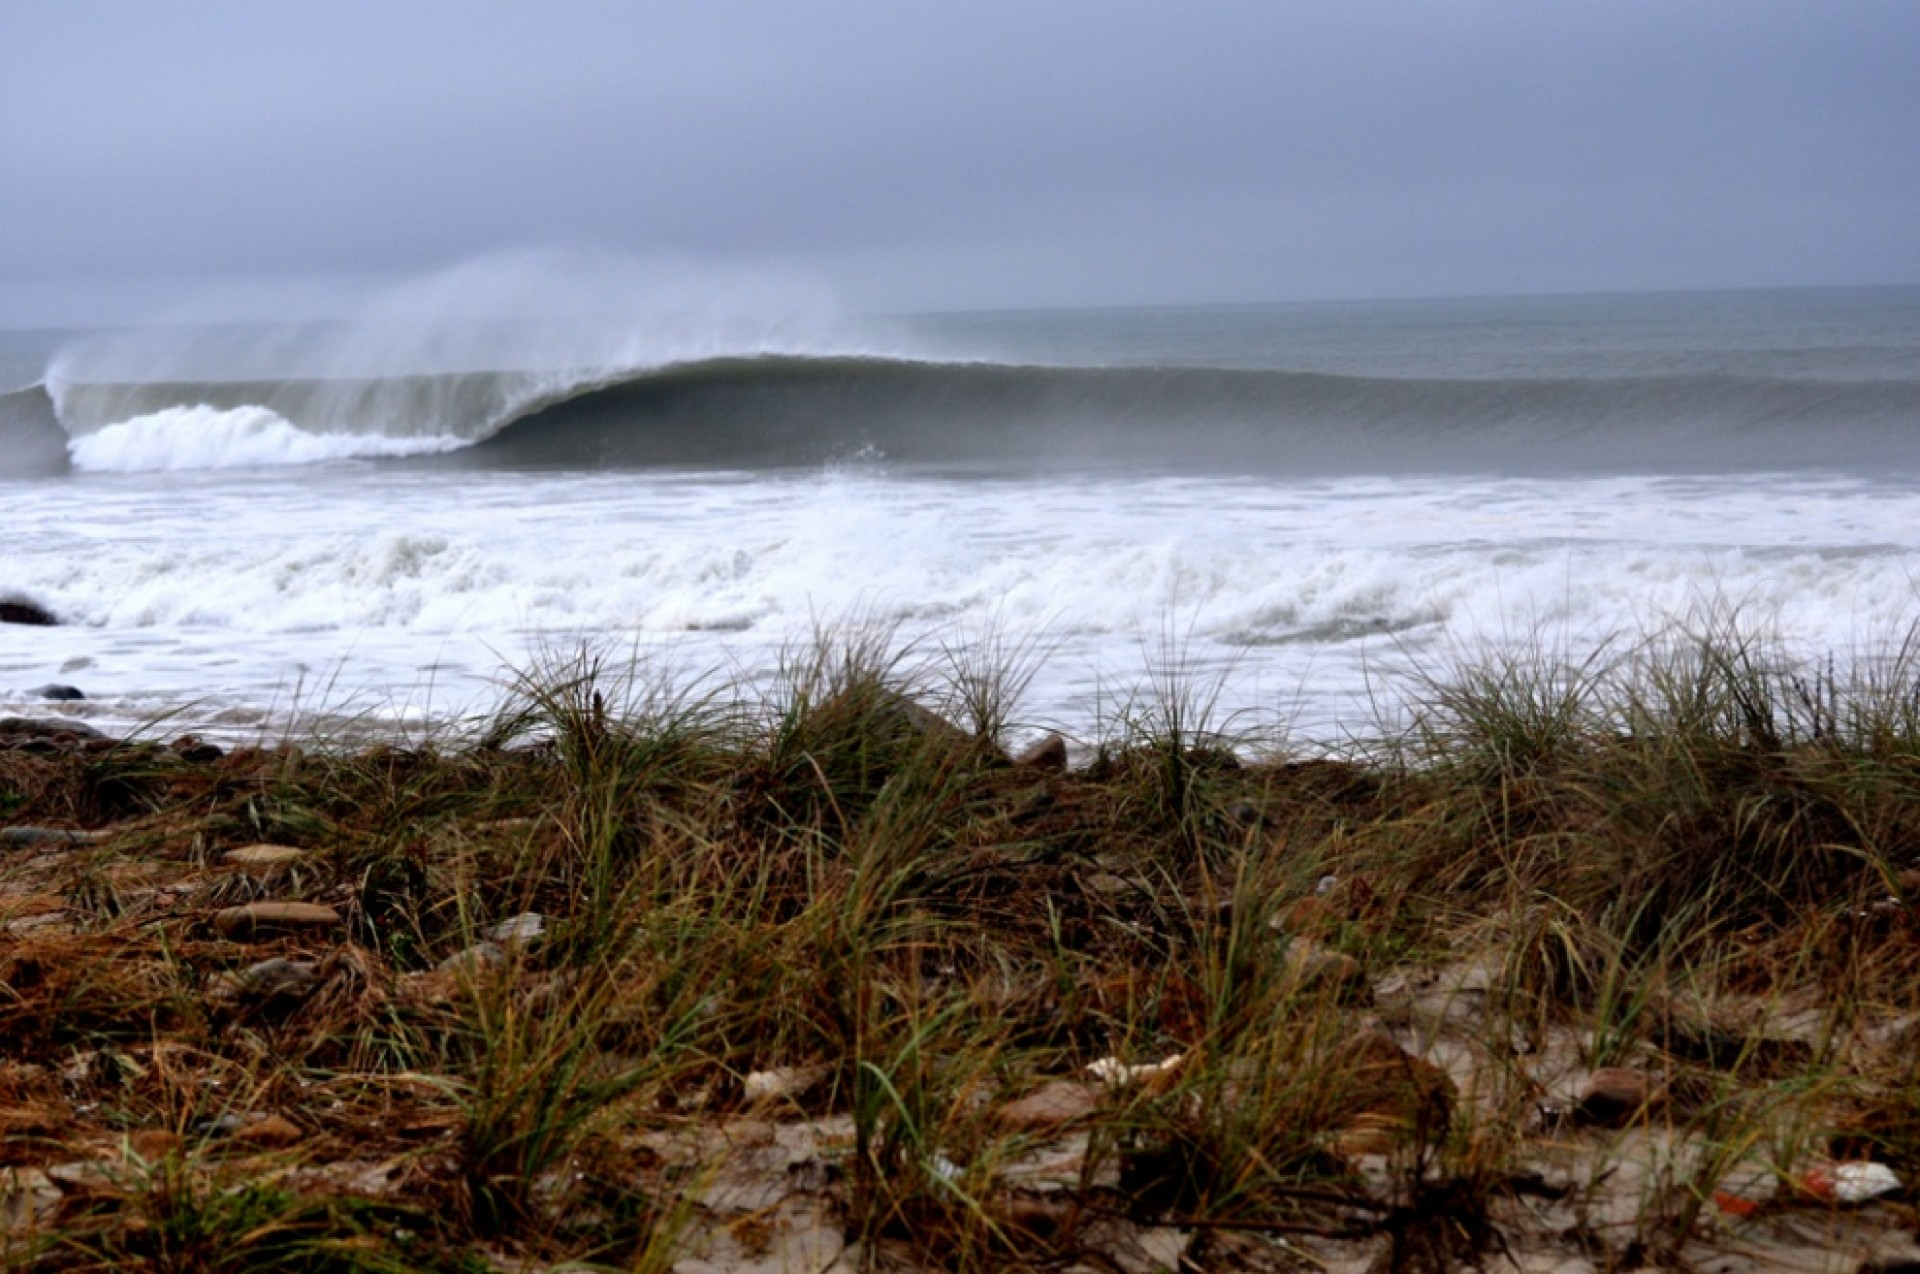 surf is swell's photo of New England Hurricane